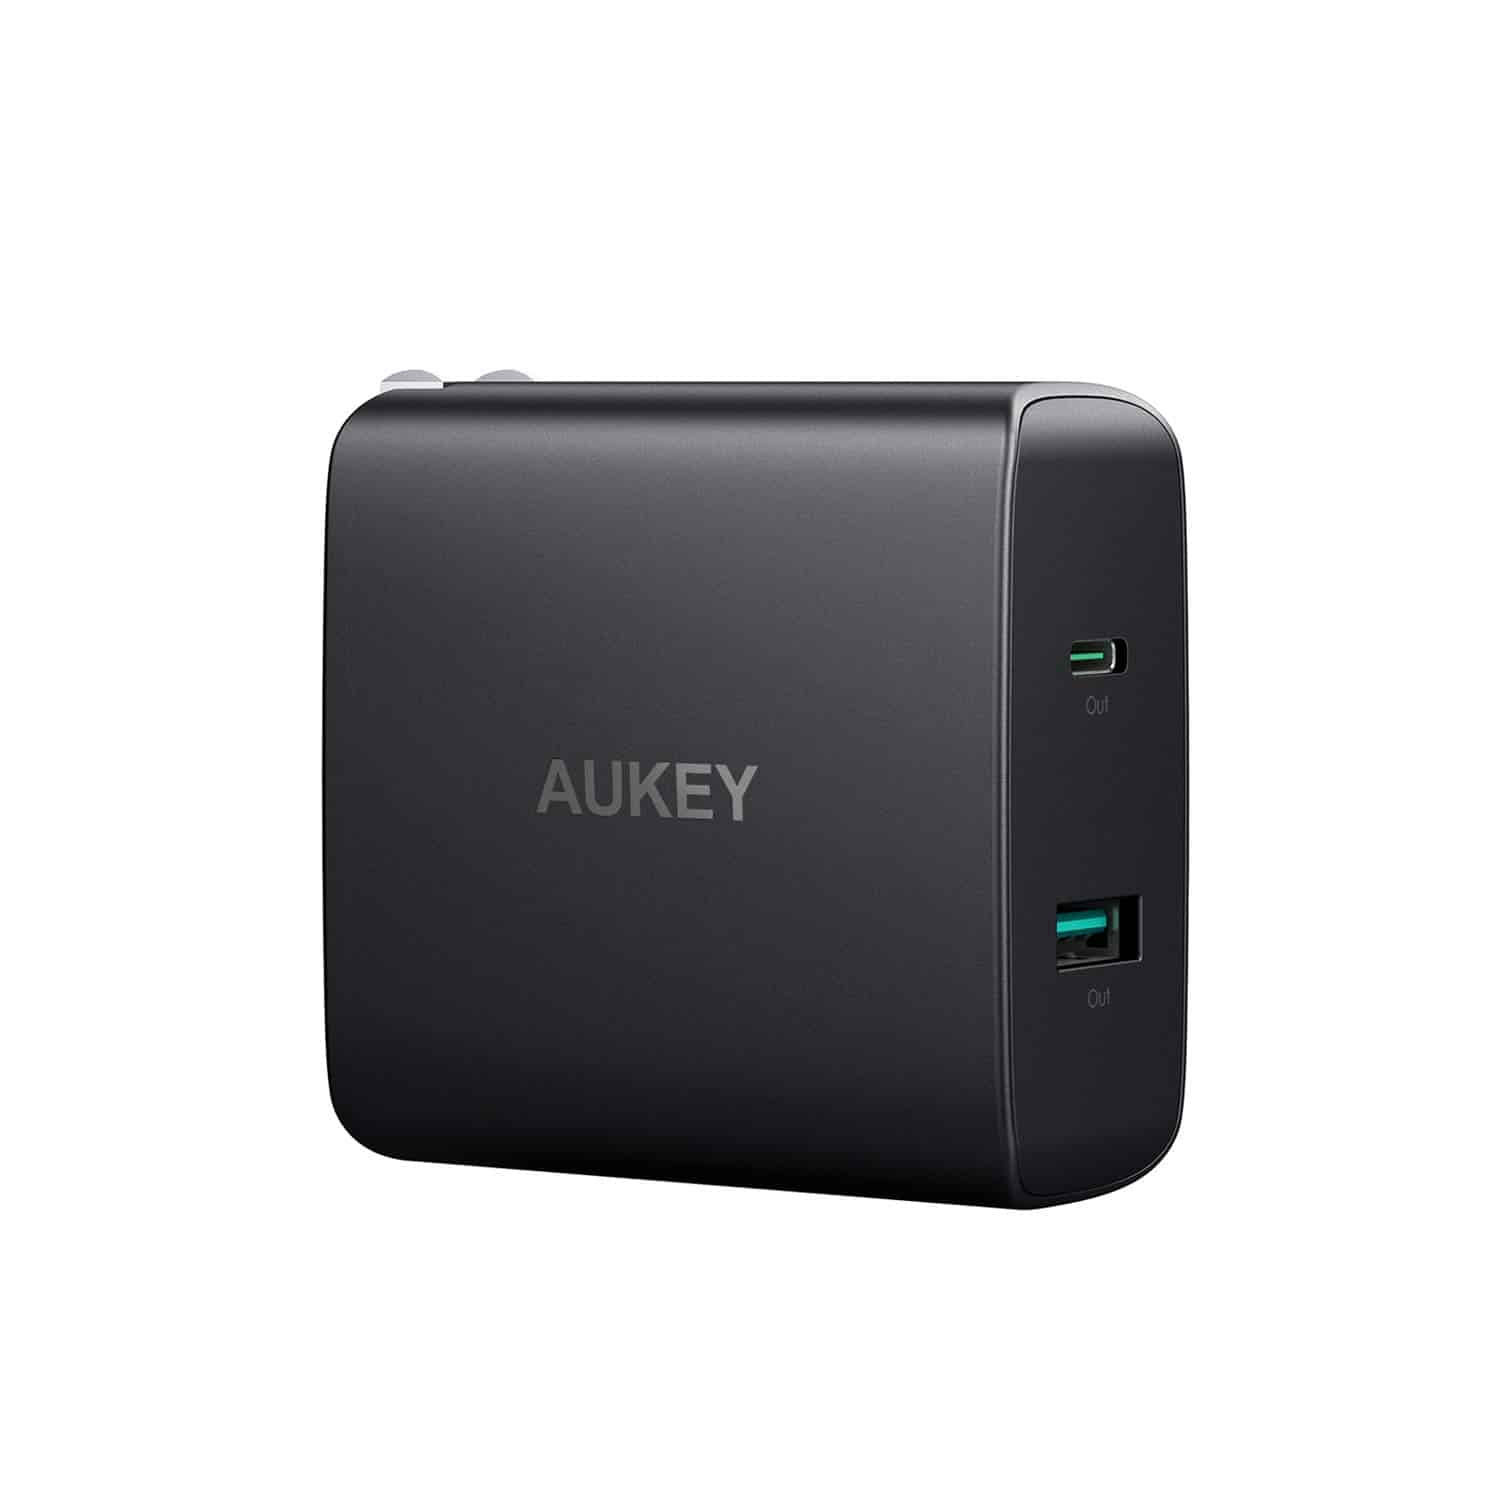 Save up to 30% on AUKEY USB Chargers, Speakers and Accessories - Amazon